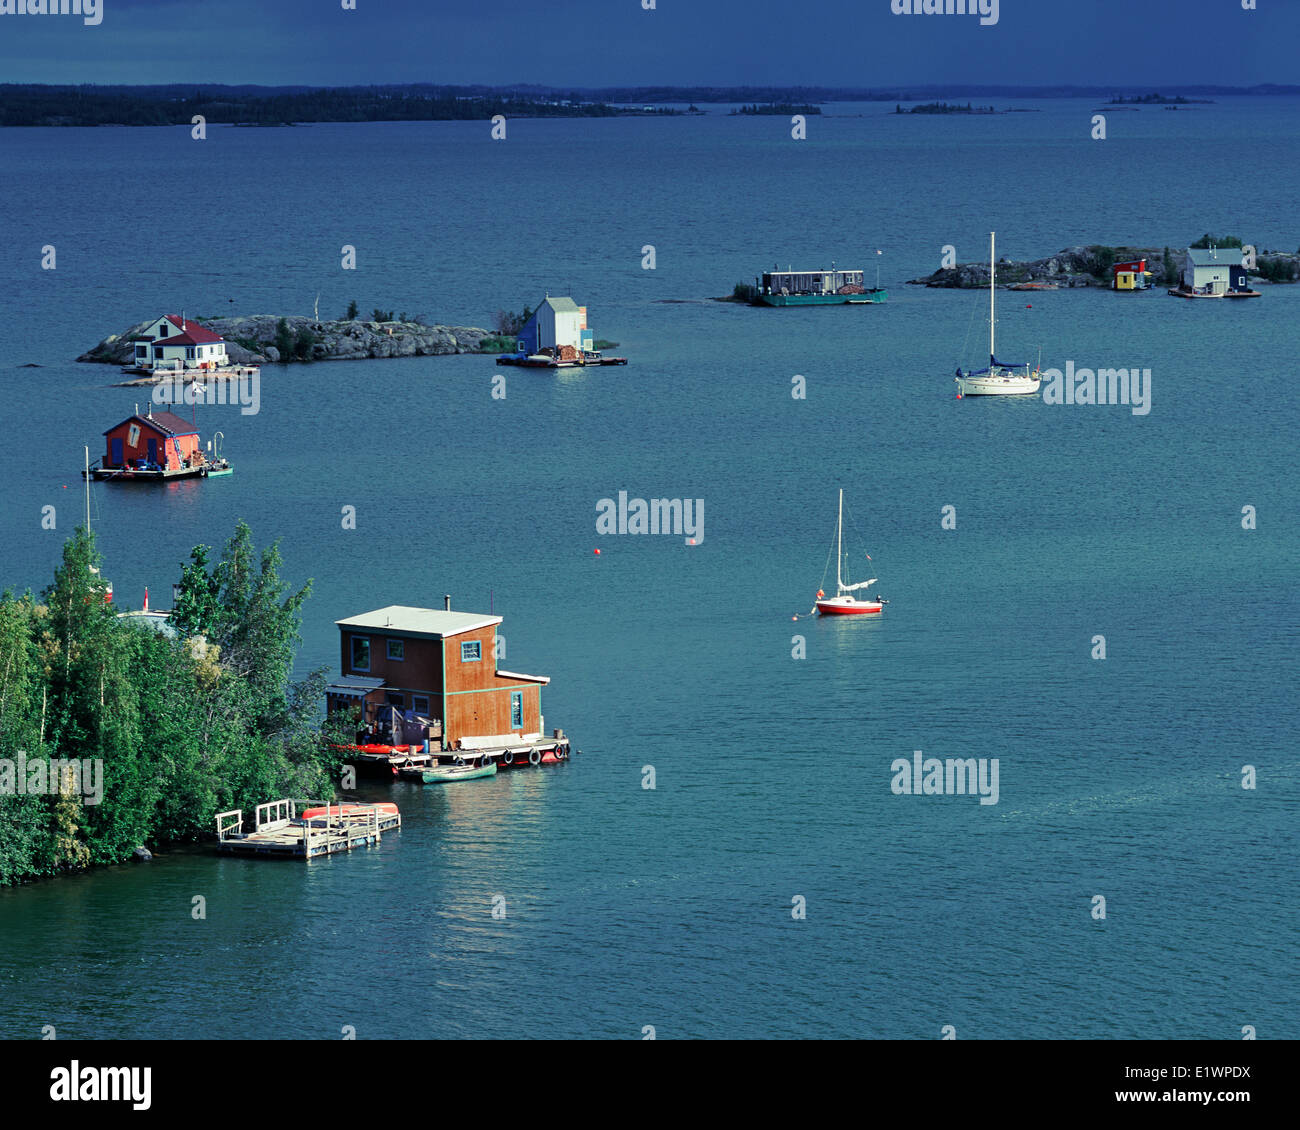 FLOATING HOUSES, YELLOWKNIFE BAY, GREAT SLAVE LAKE